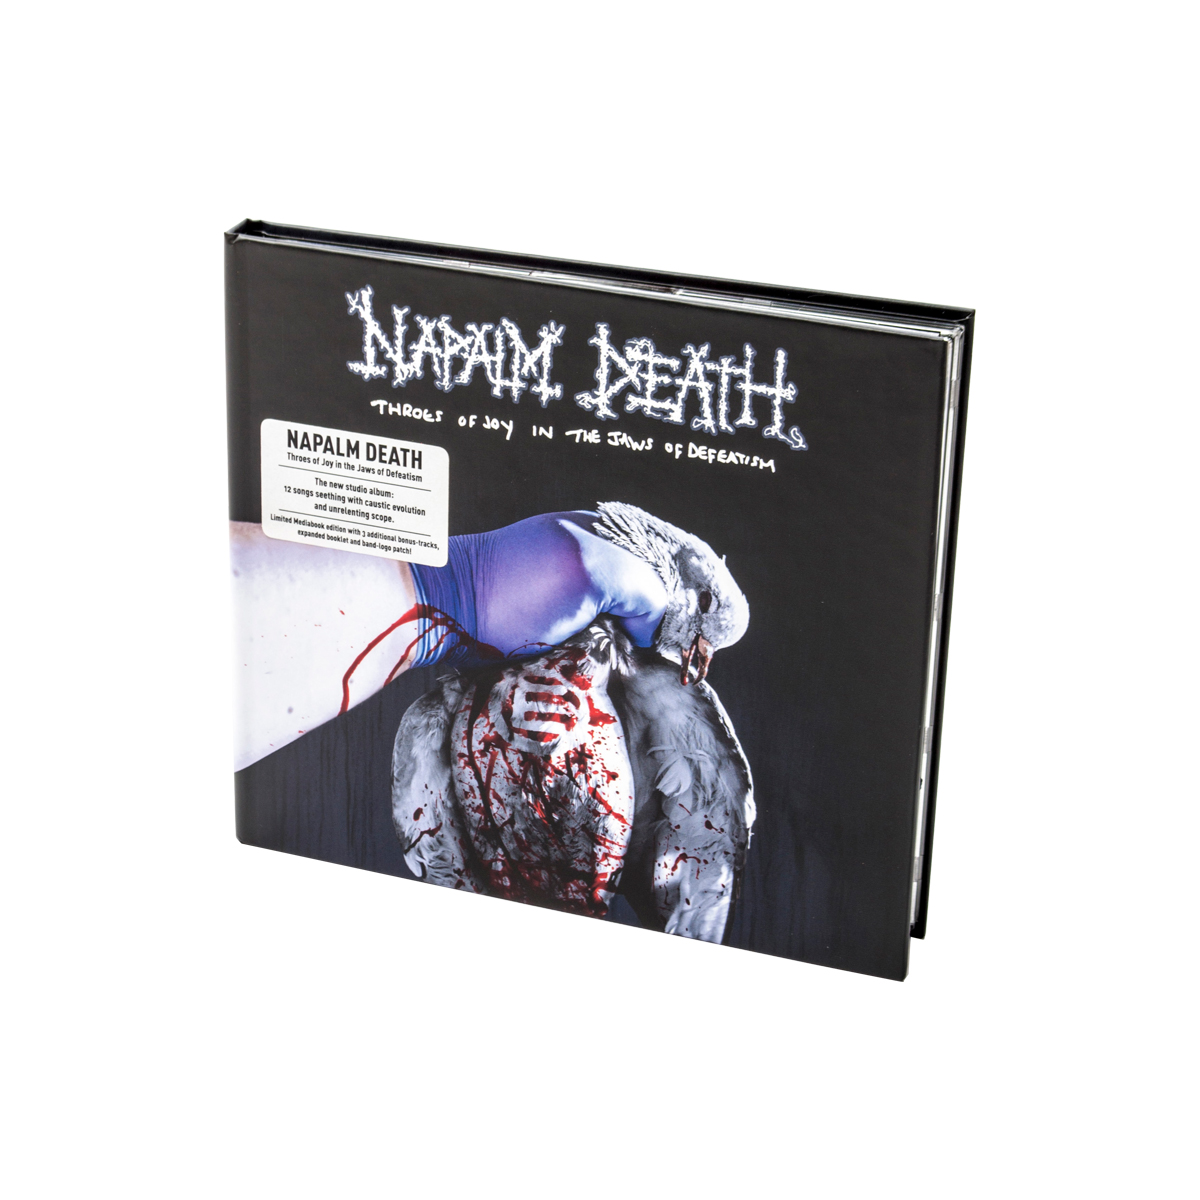 Napalm Death - Throes of Joy in the Jaws of Defeatism Ltd. CD Media Book + Patch + Digital Download